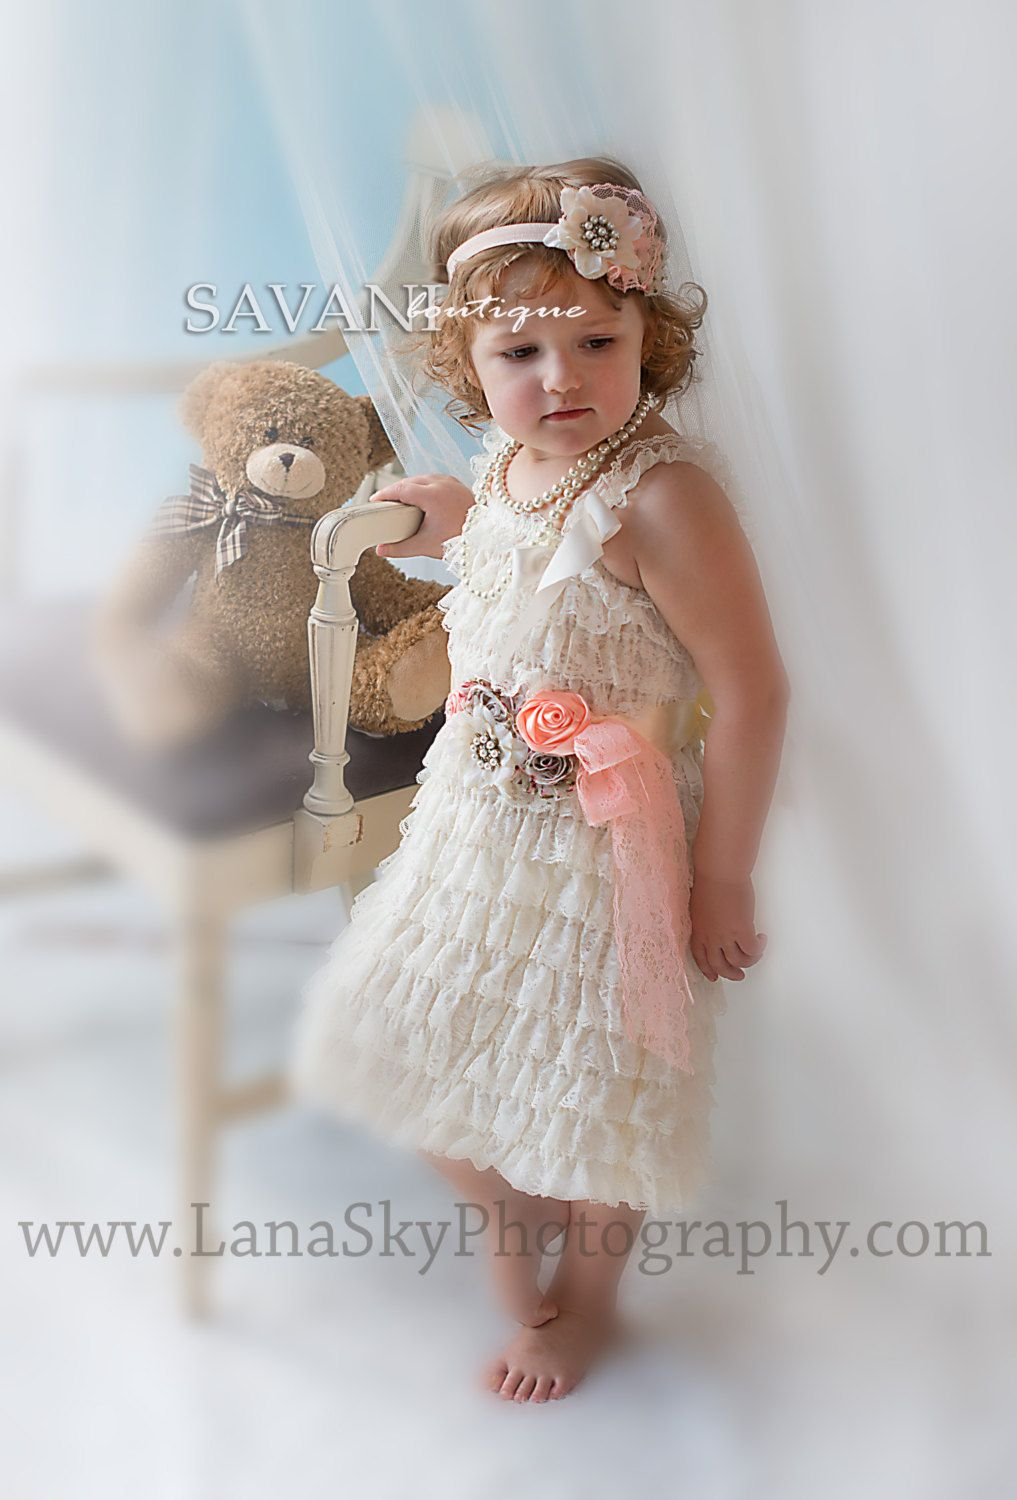 Lace dress for baby girl  Flower girl dressGirl lace dresses  pieces by SAVANIboutique